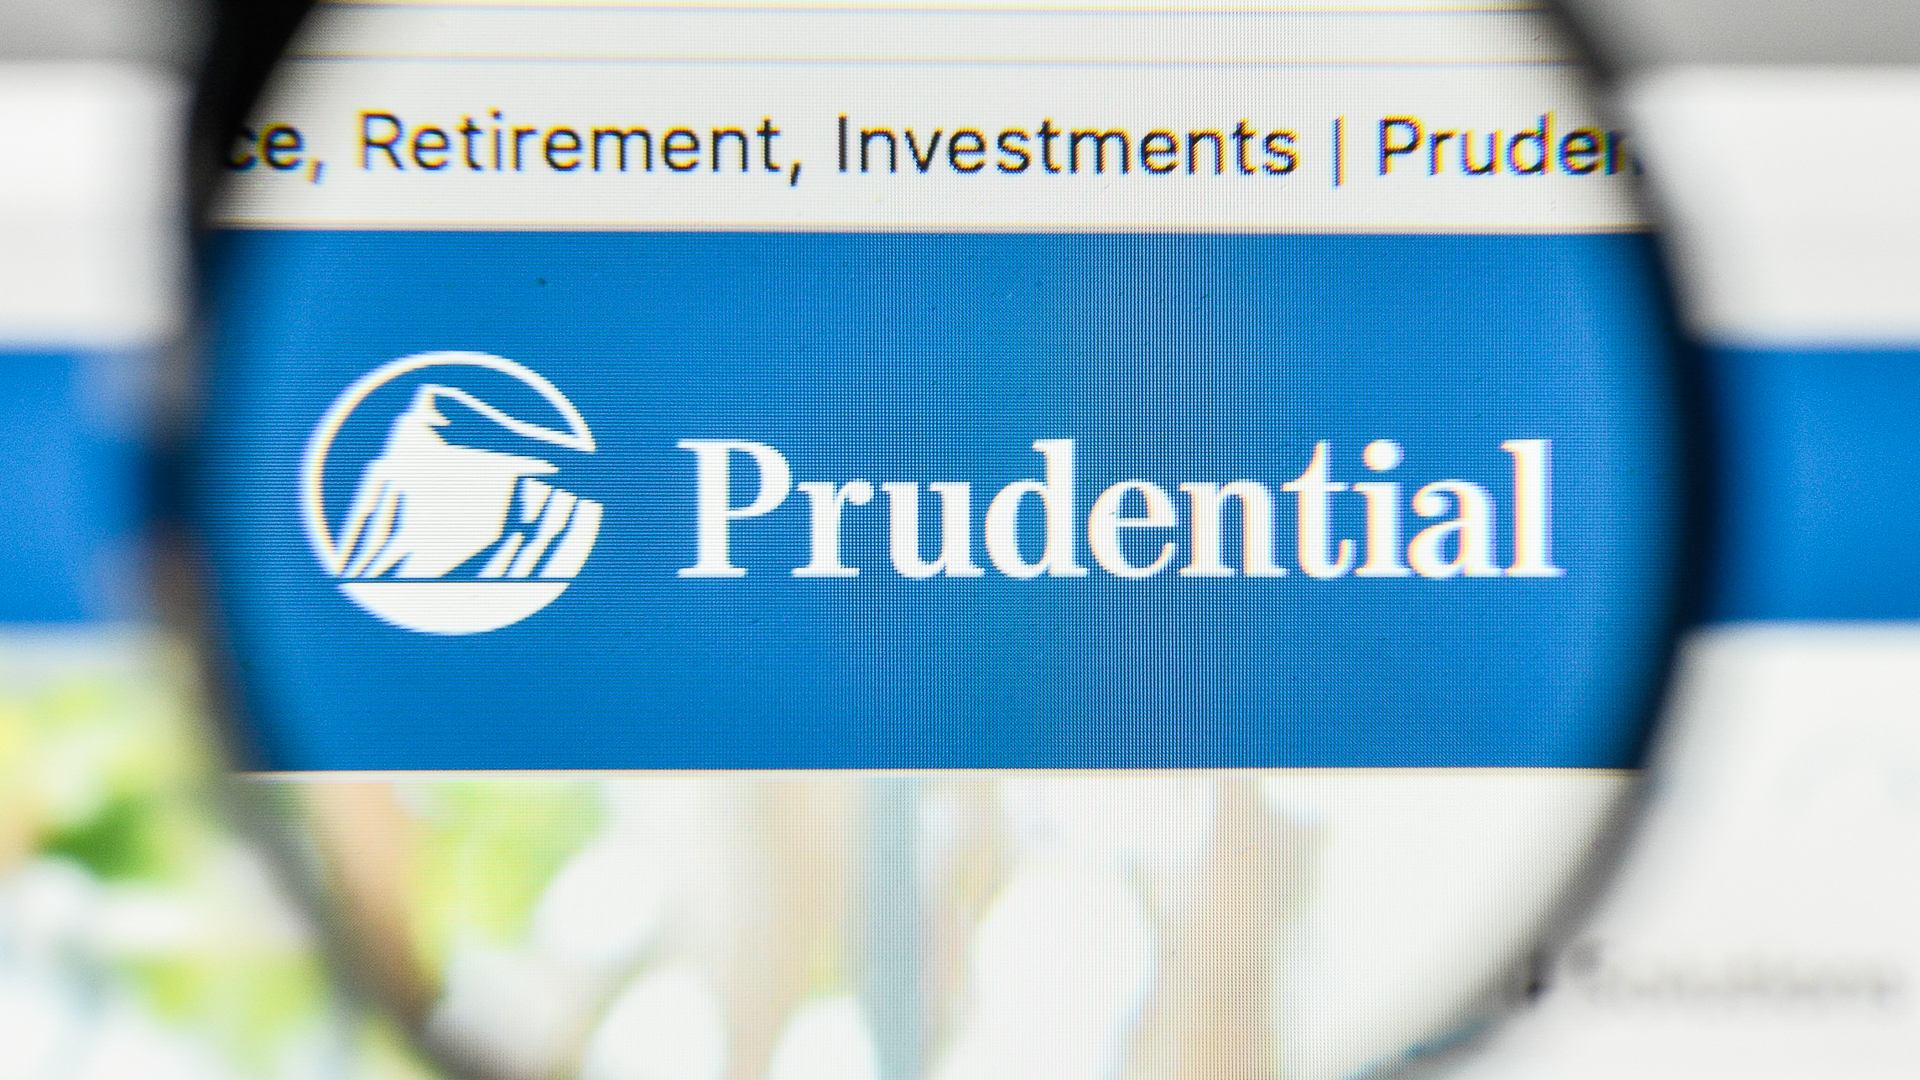 Prudential 401k investment options millennium global investment